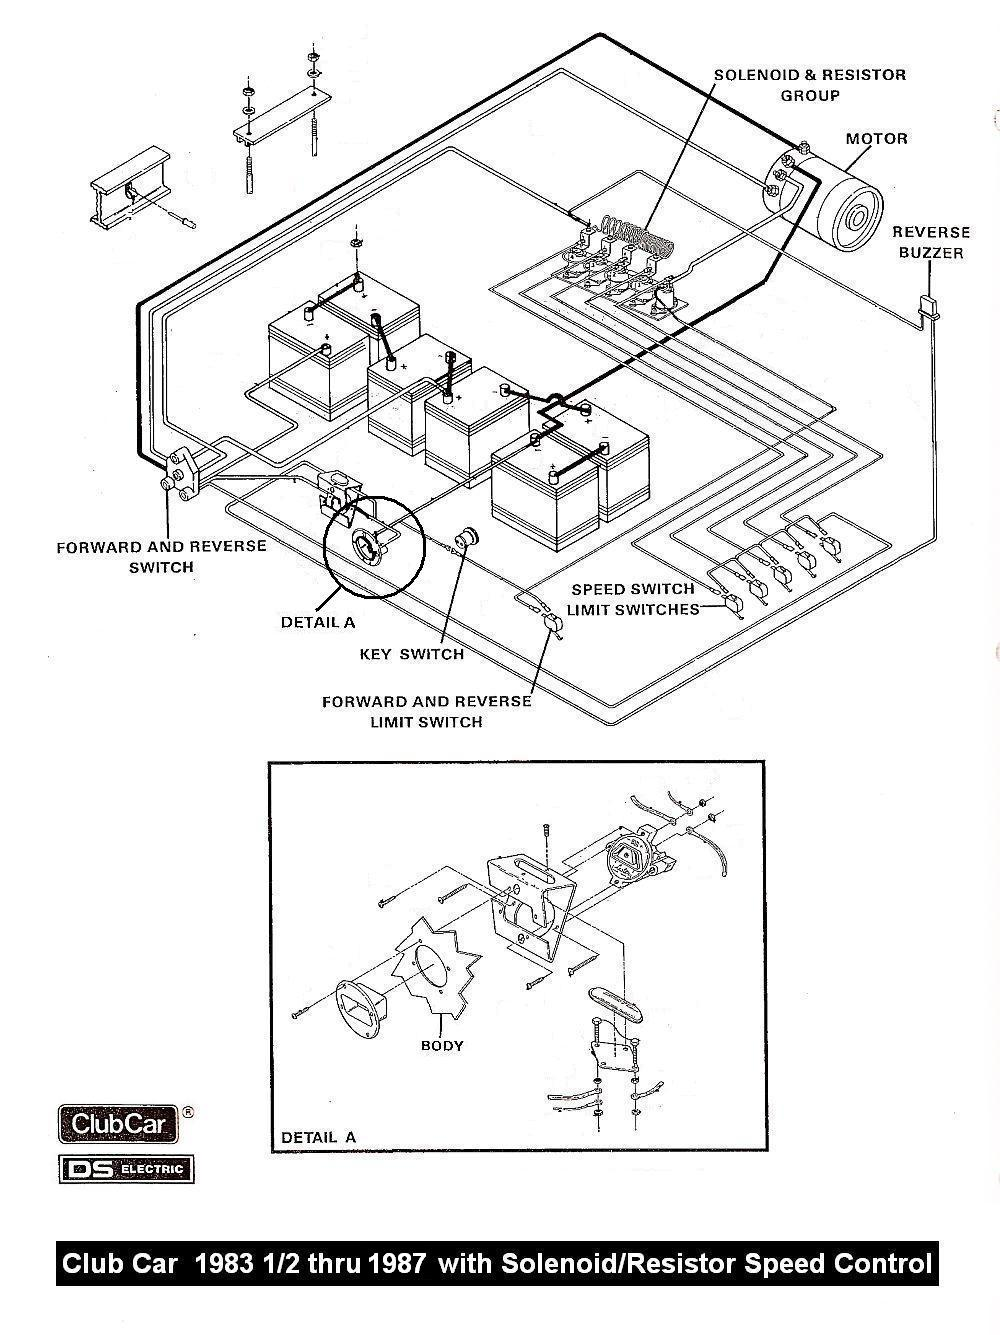 light for 2002 club car wiring diagram 86 club car runs with key off key switch for club car wiring diagram